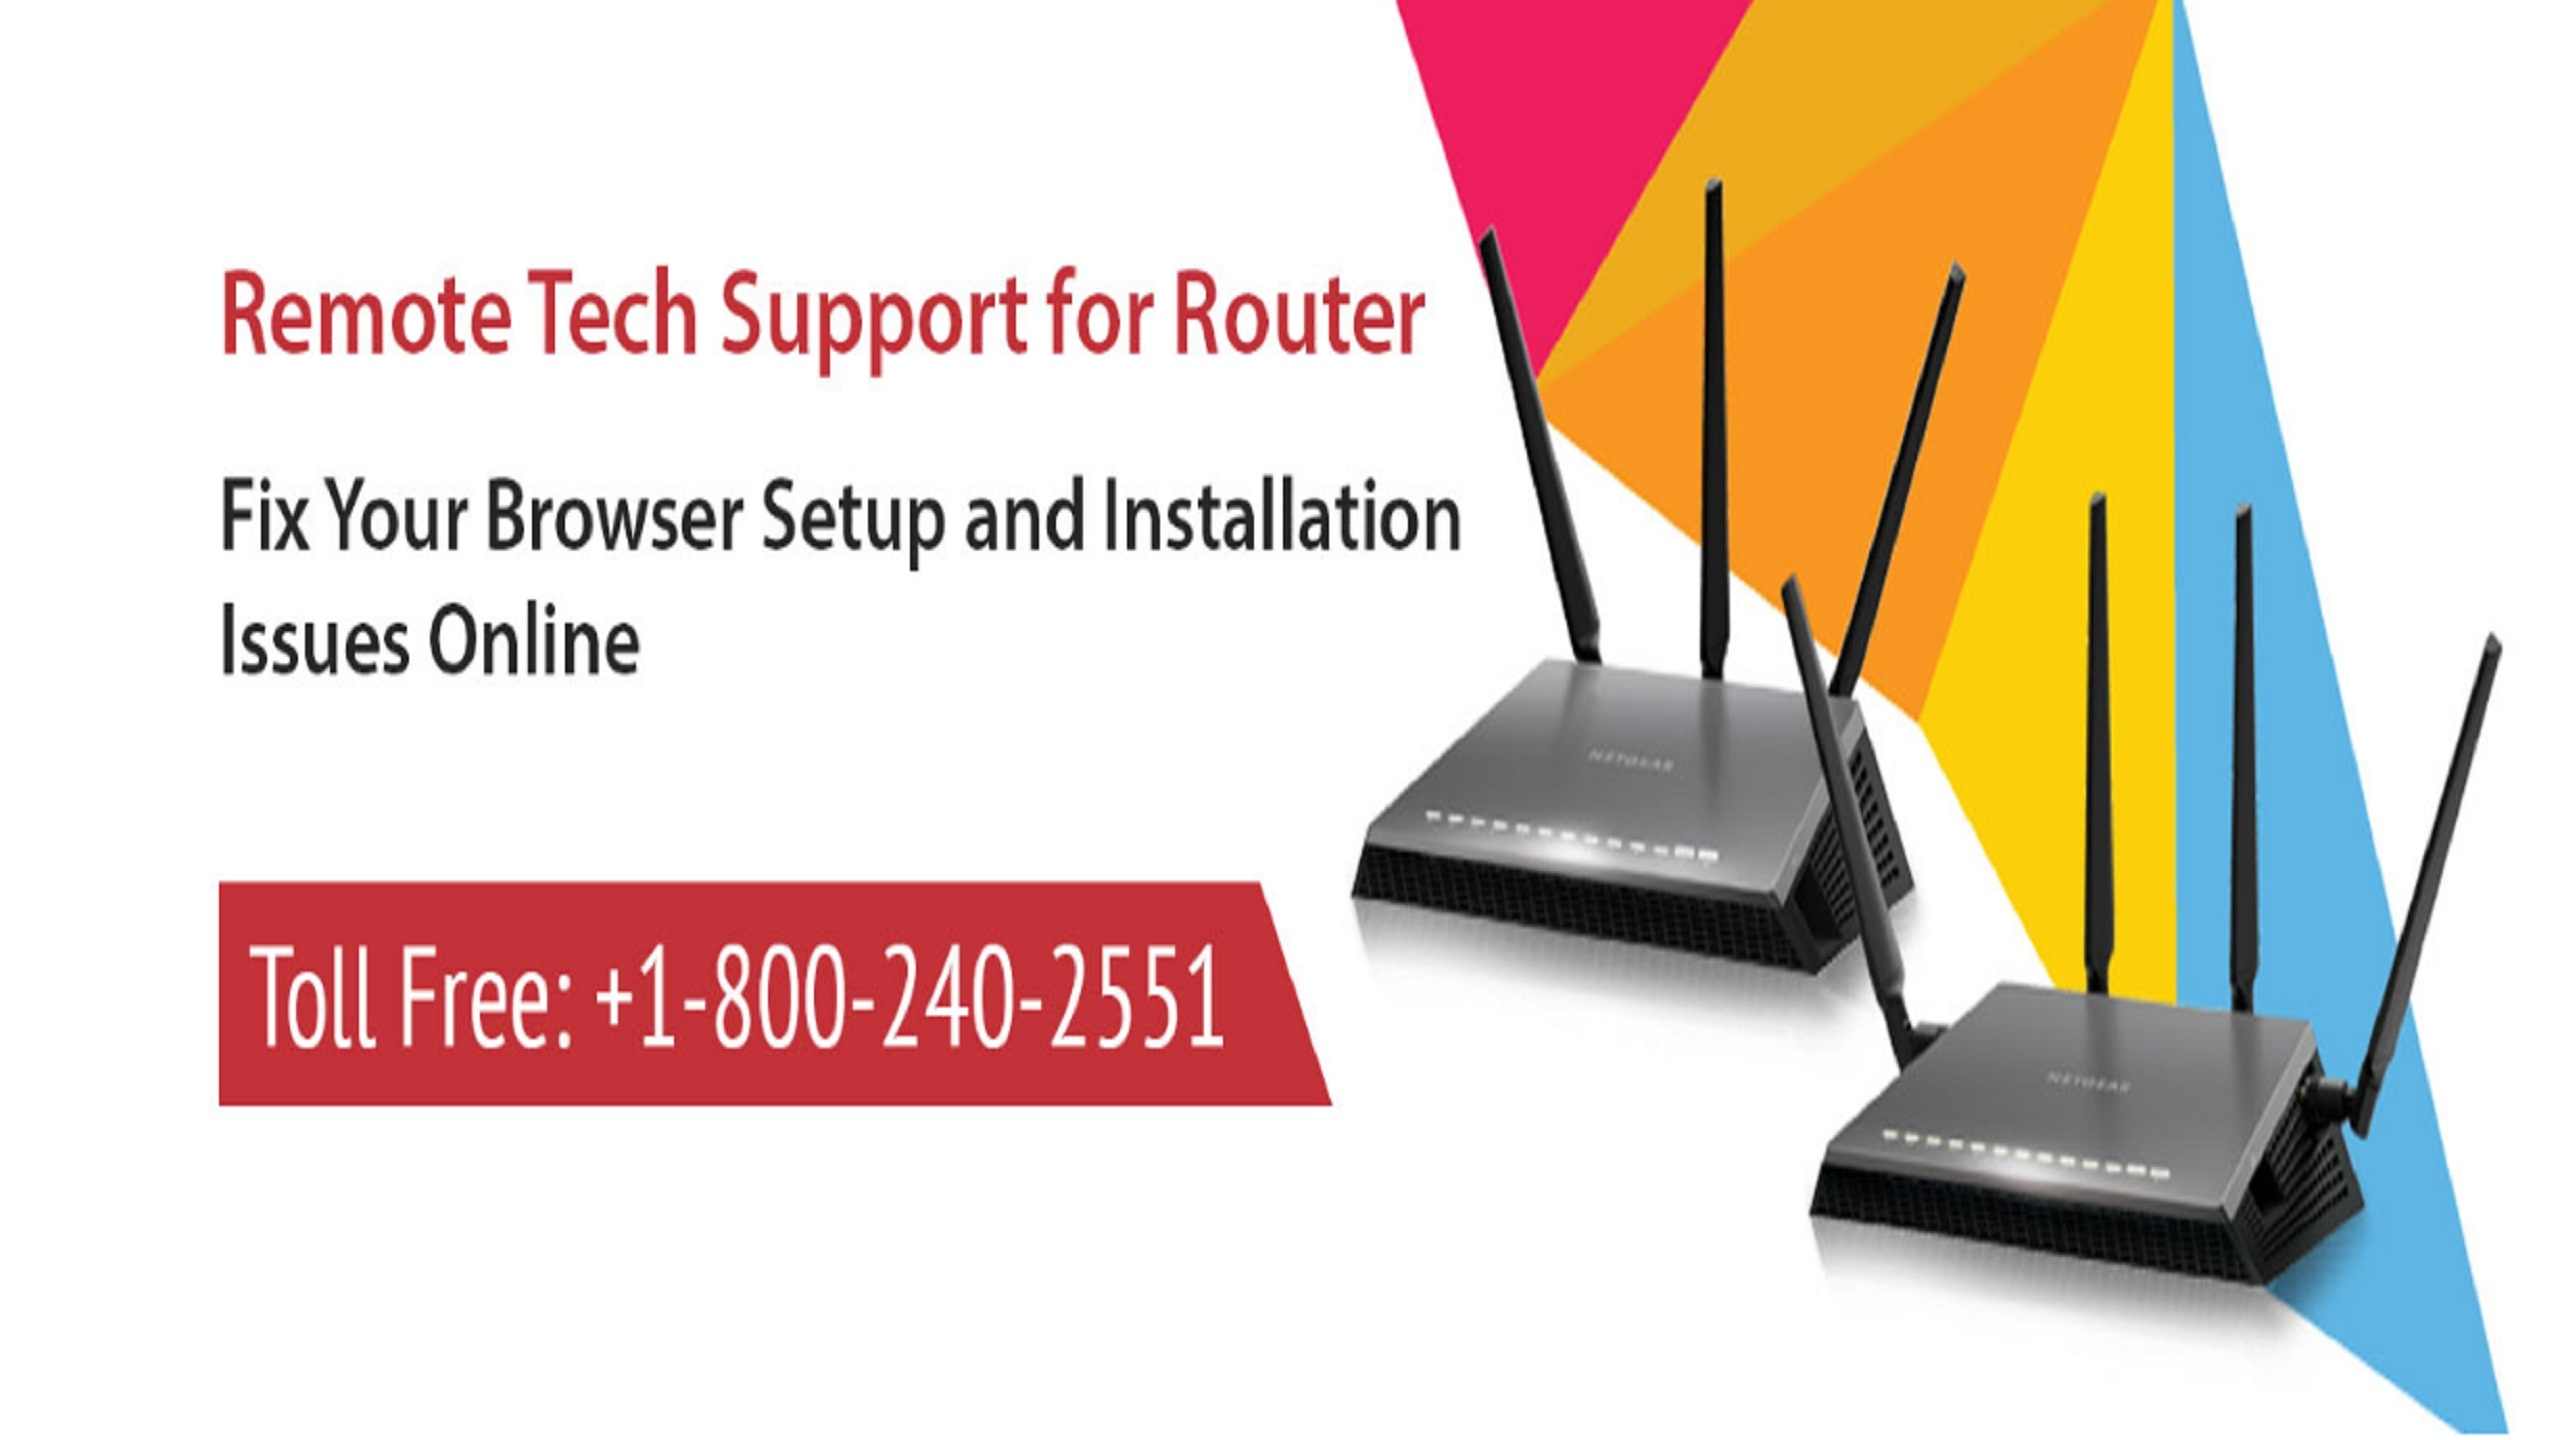 Router technical support 18002046959 phone num (@routersupportphonenumber) Cover Image